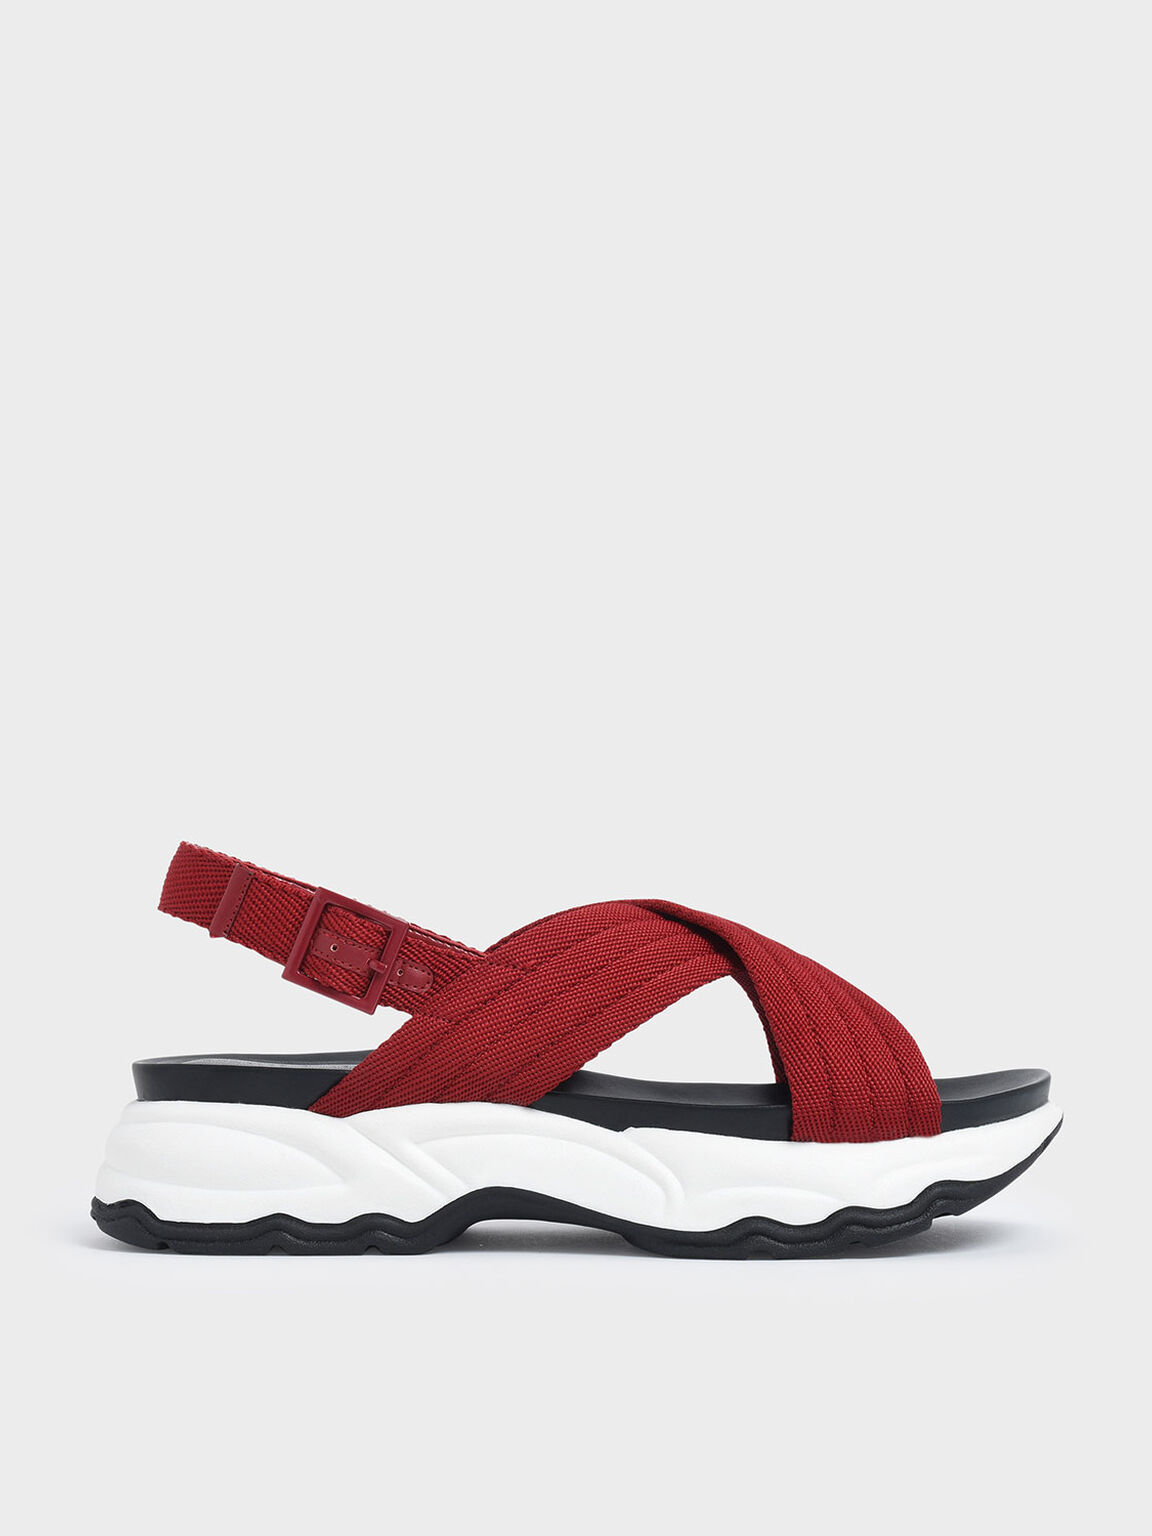 Nylon Criss Cross Chunky Platform Sandals, Red, hi-res